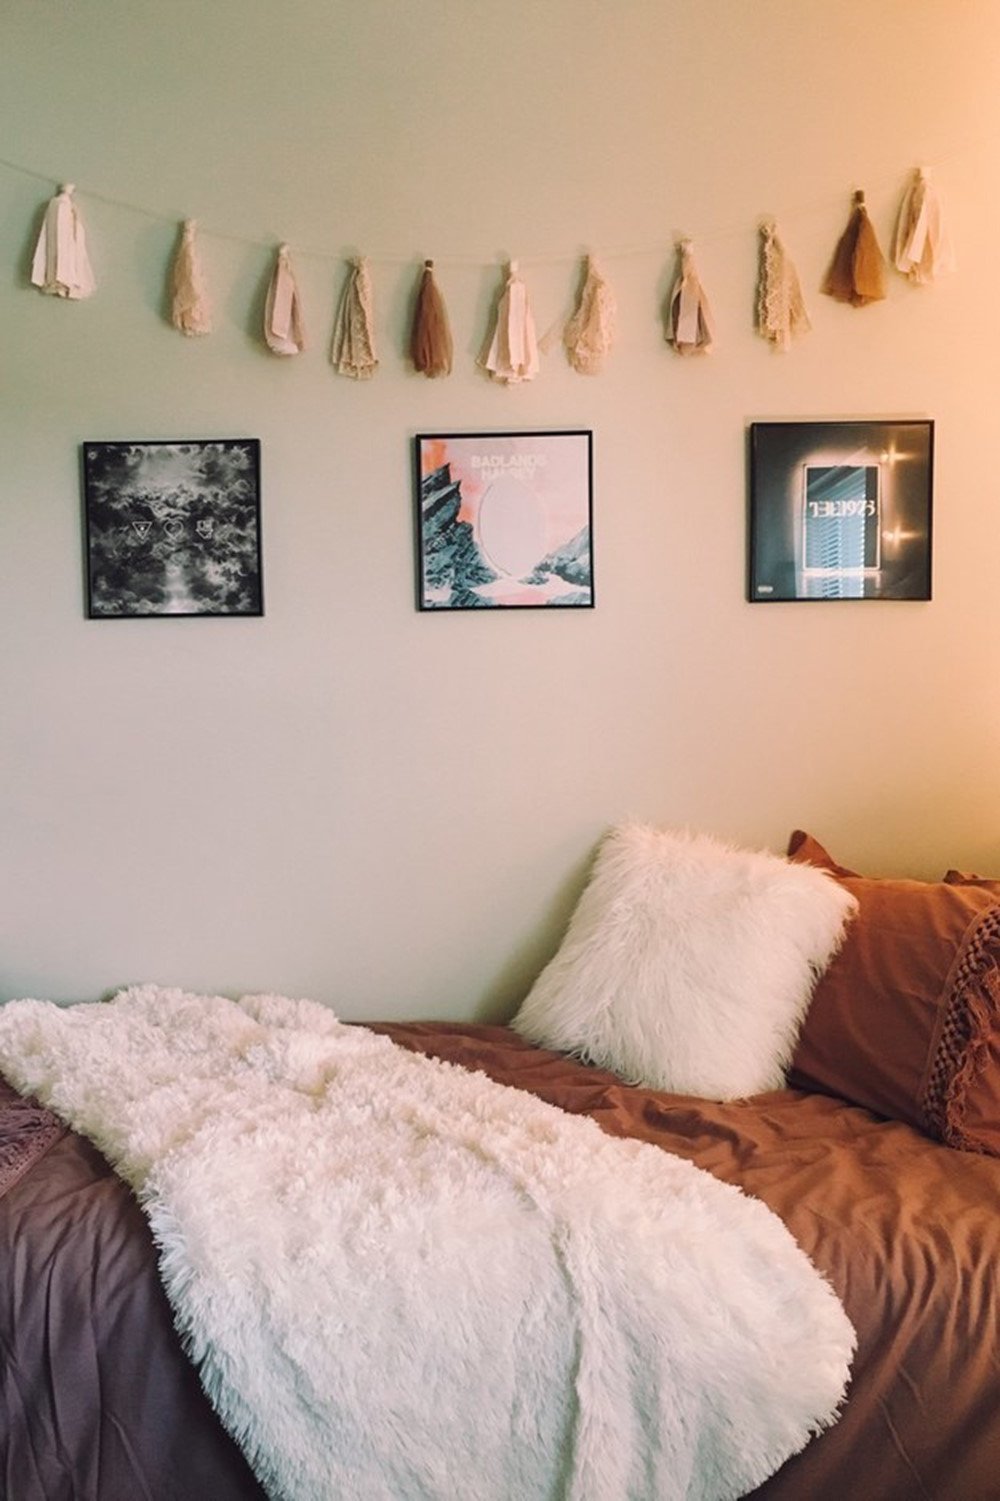 15 Minimalist Room Decor Ideas That'll Motivate You To ... on Pictures For Room Decor  id=45723